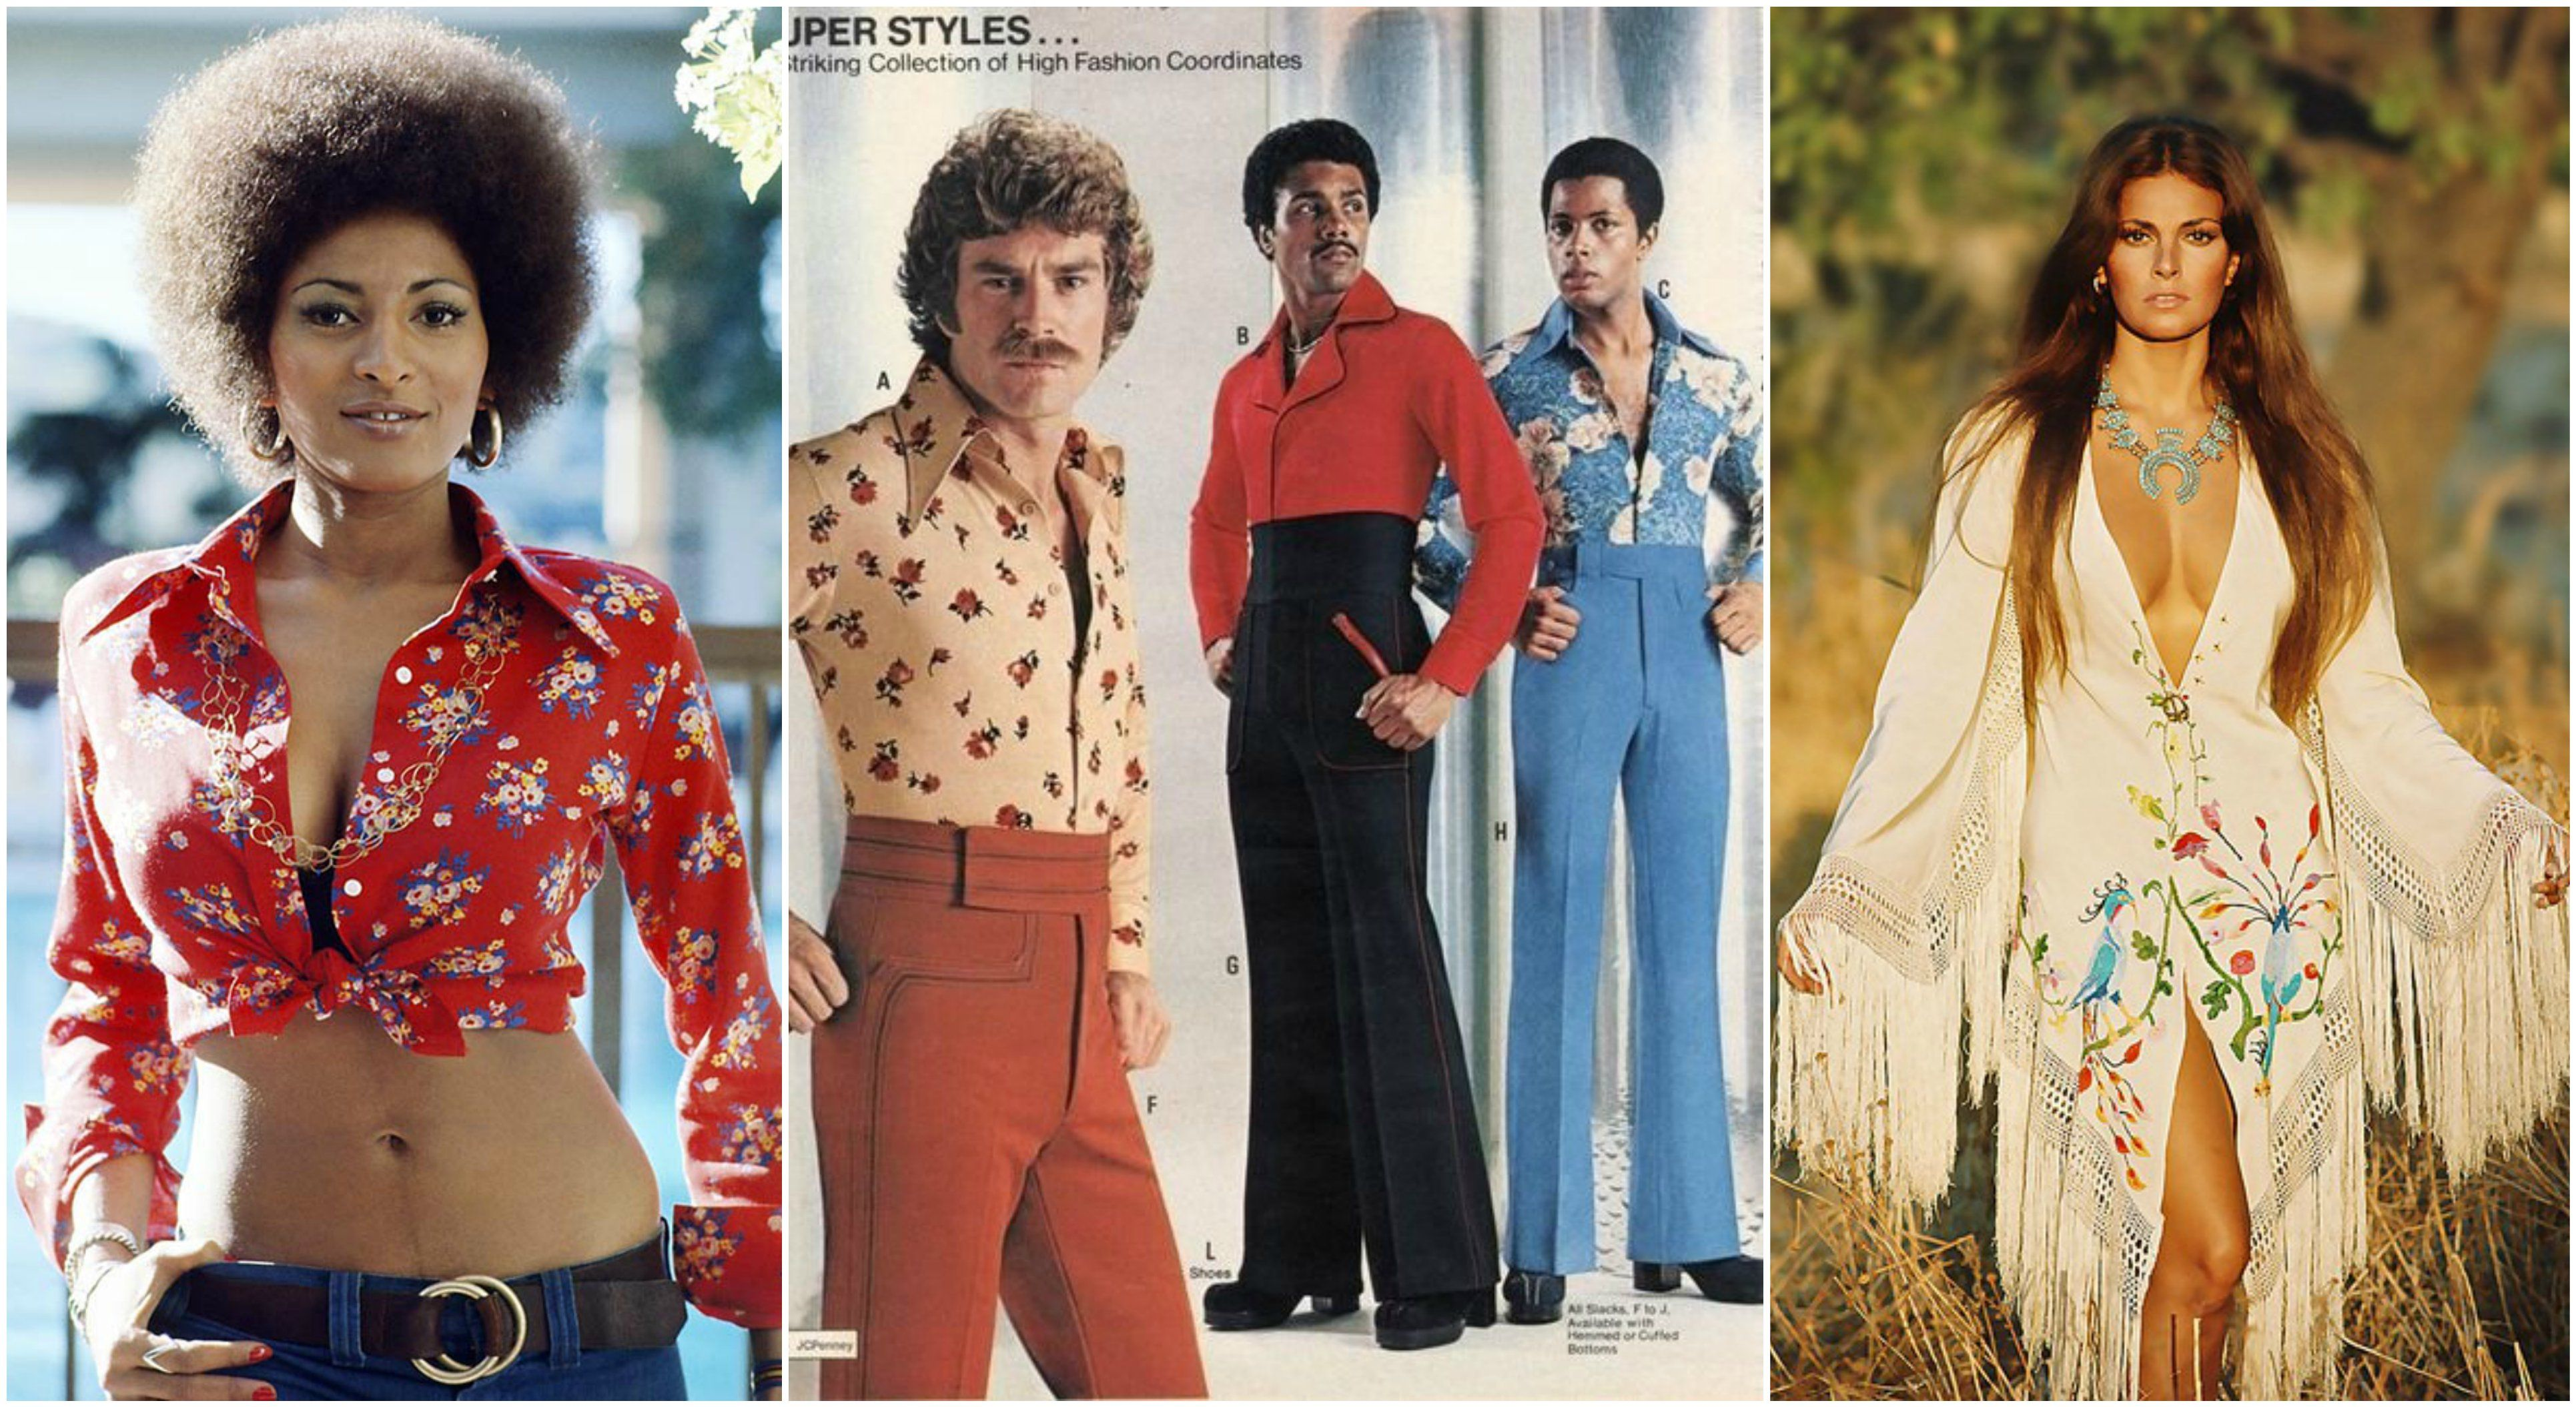 1970s Celebrity Vintage Style Icons: Influences on 2011 ...